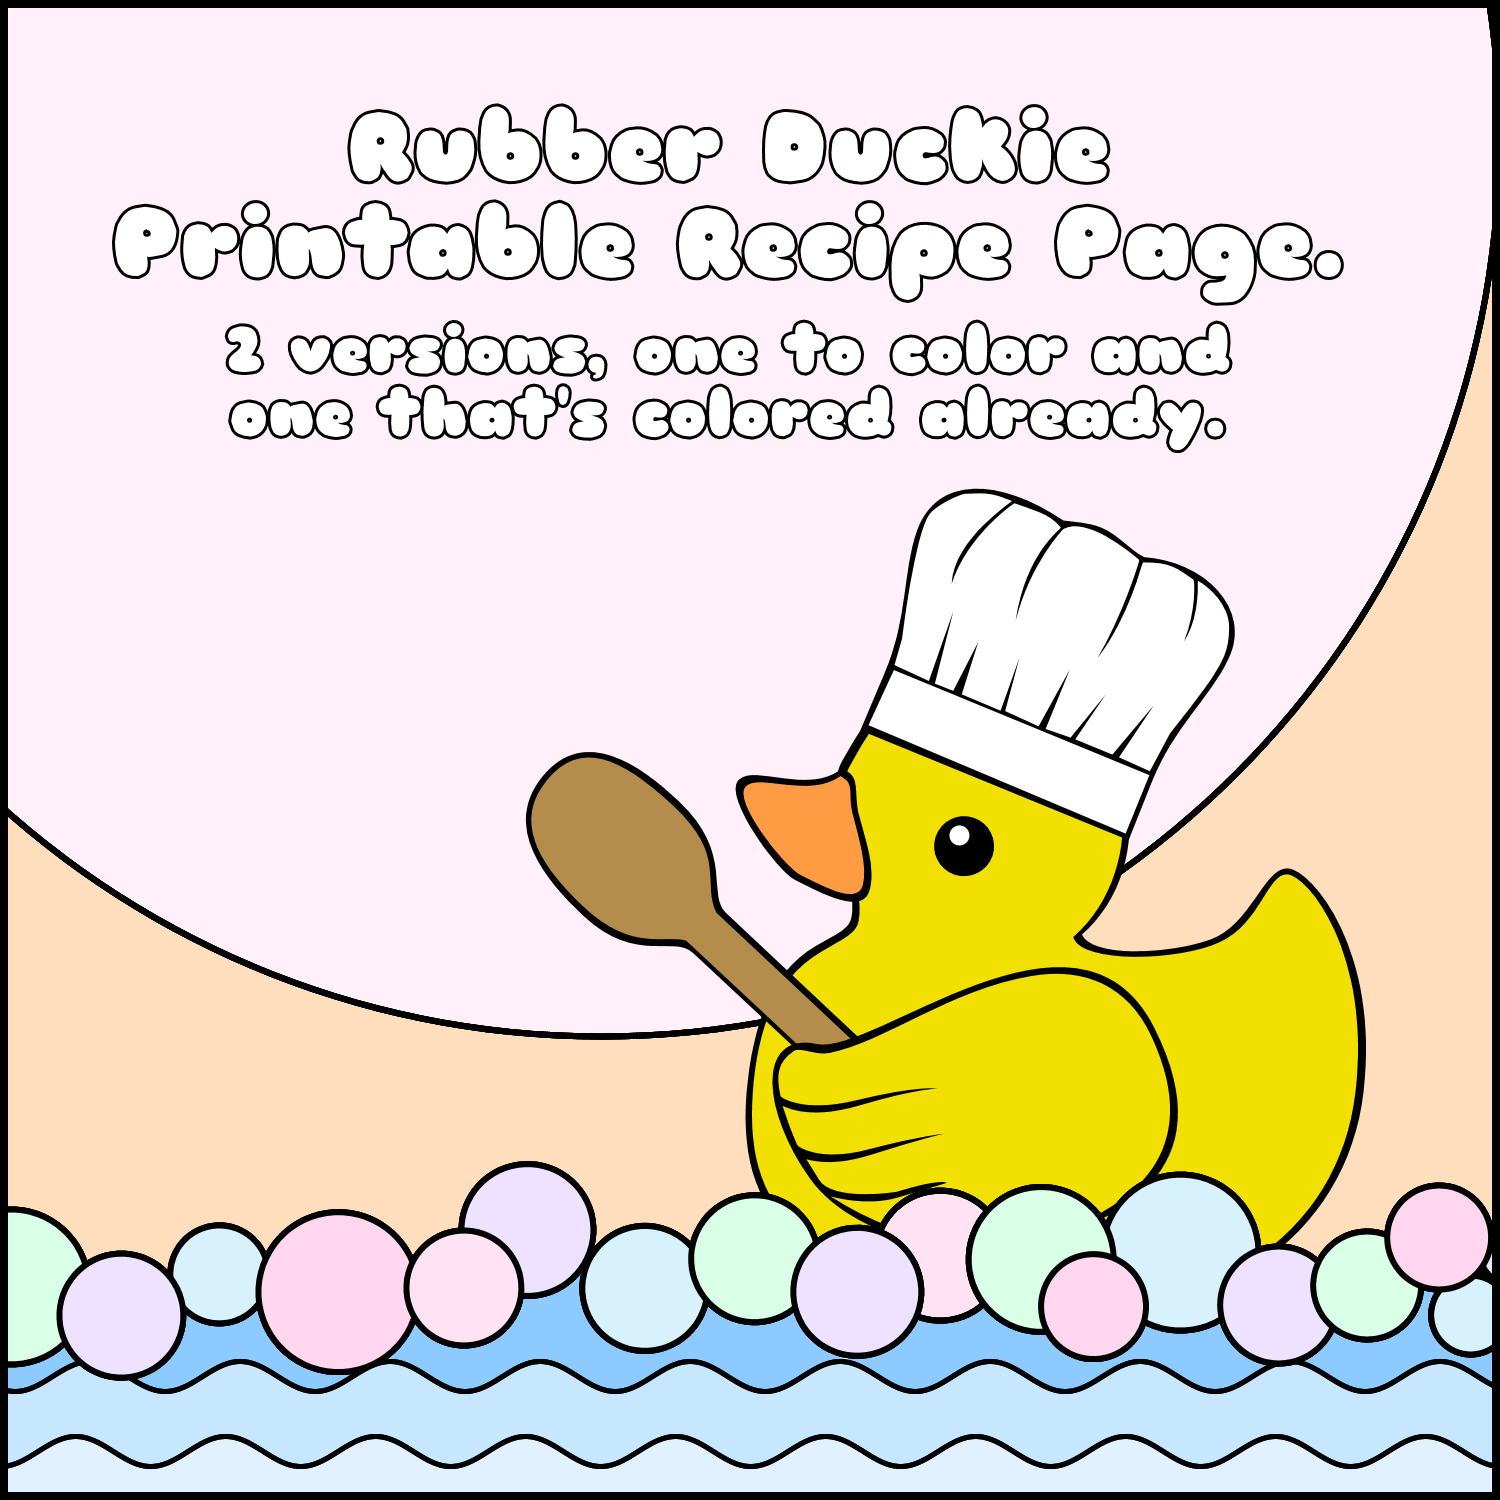 Rubber duck recipe page thumbnail